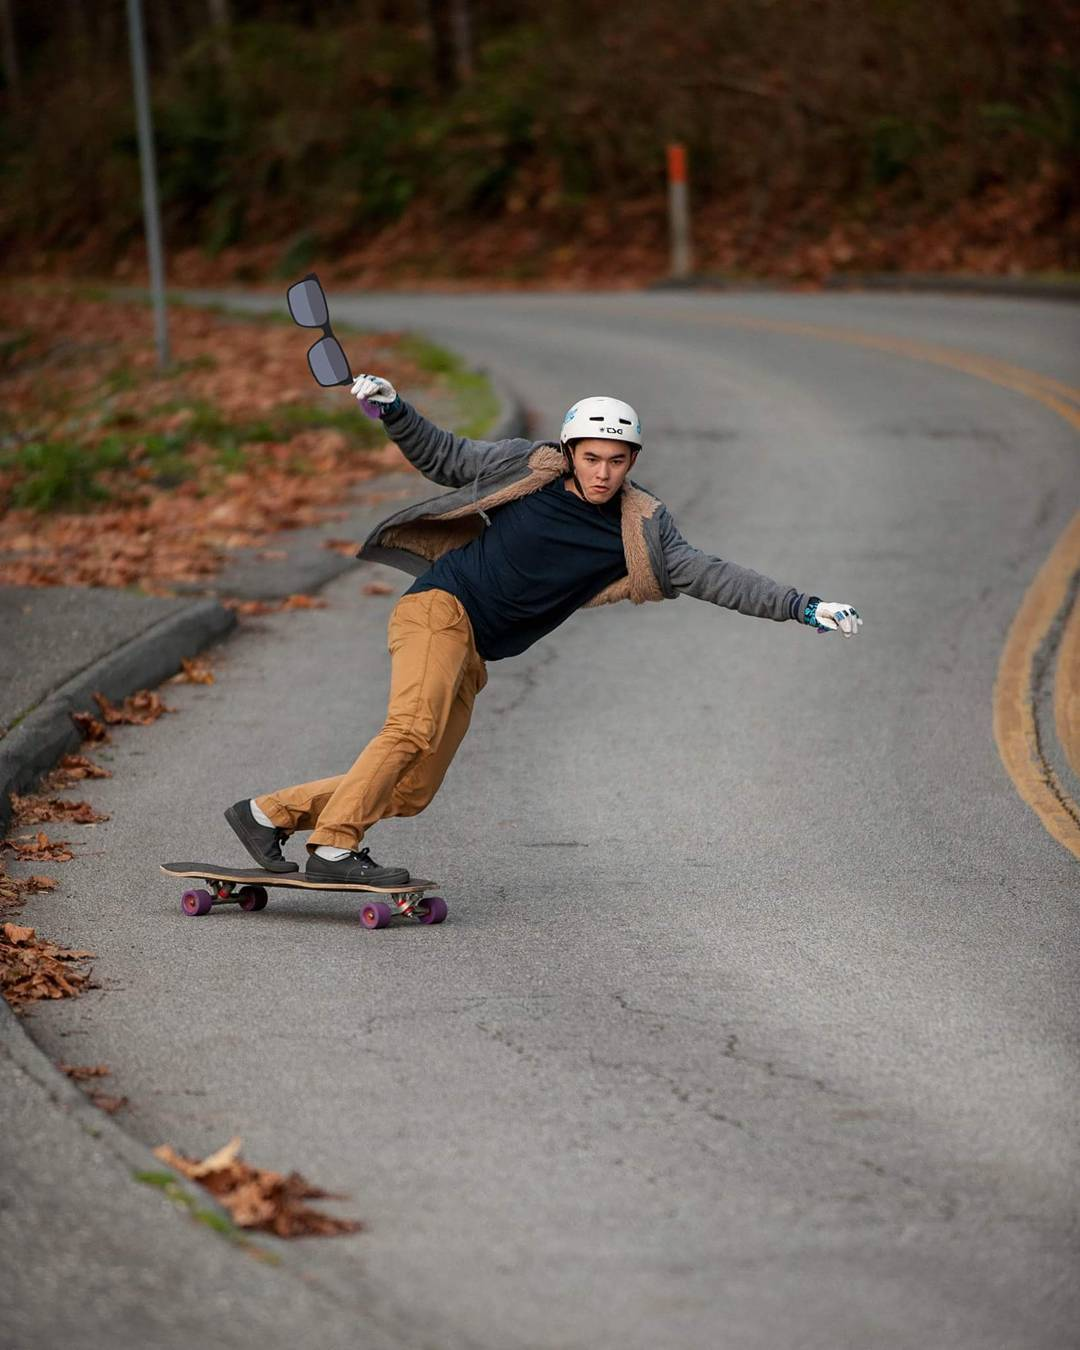 @AlexGibbison sets up for a nollie lazer flip while trying to perfect his @Liam_lbdr_ raptor arms impression. @b1rad snap